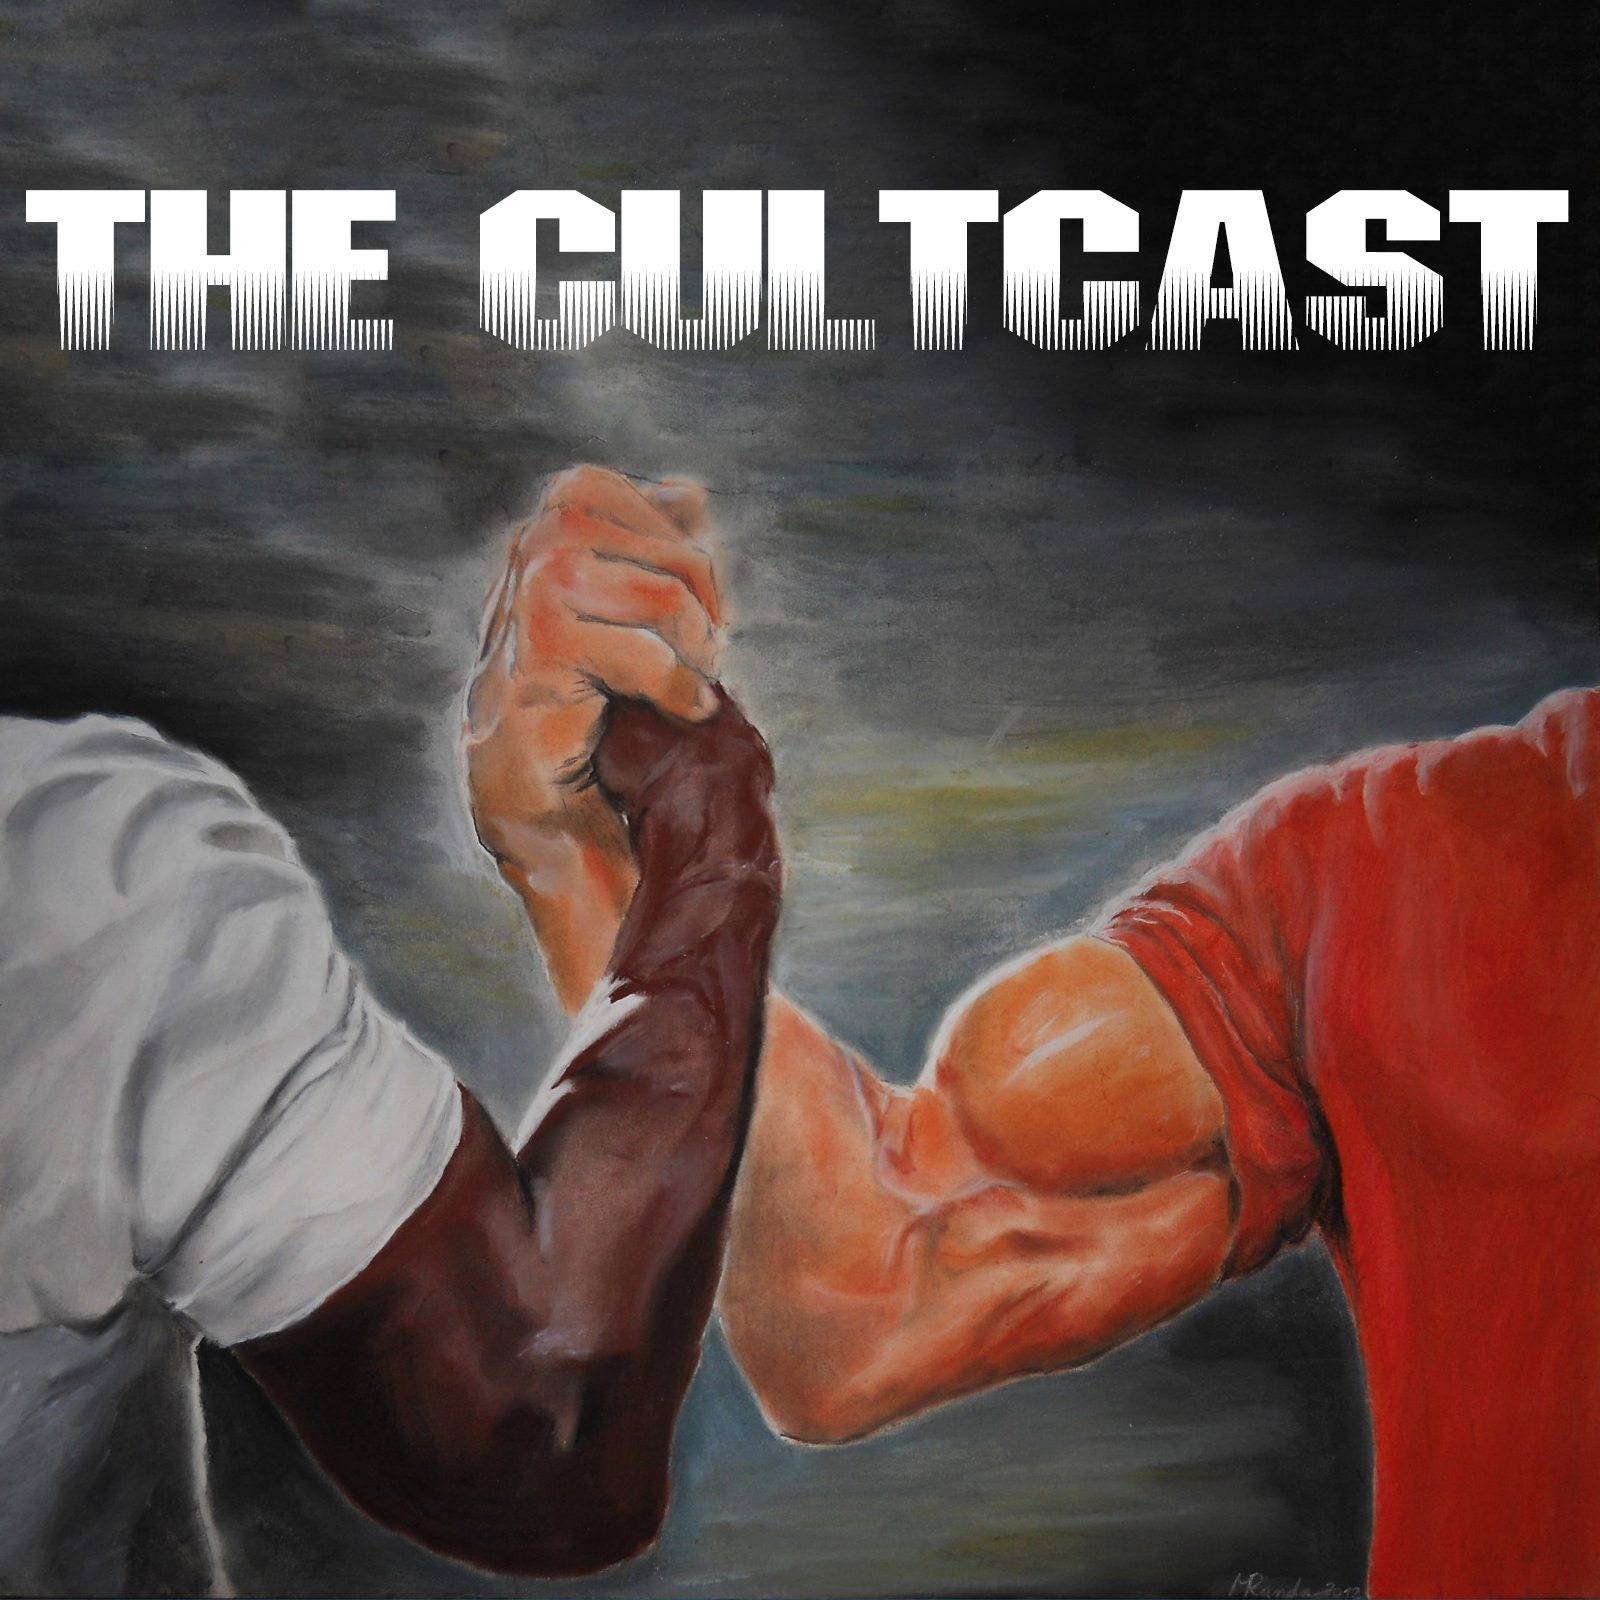 Pastime: The CultCast